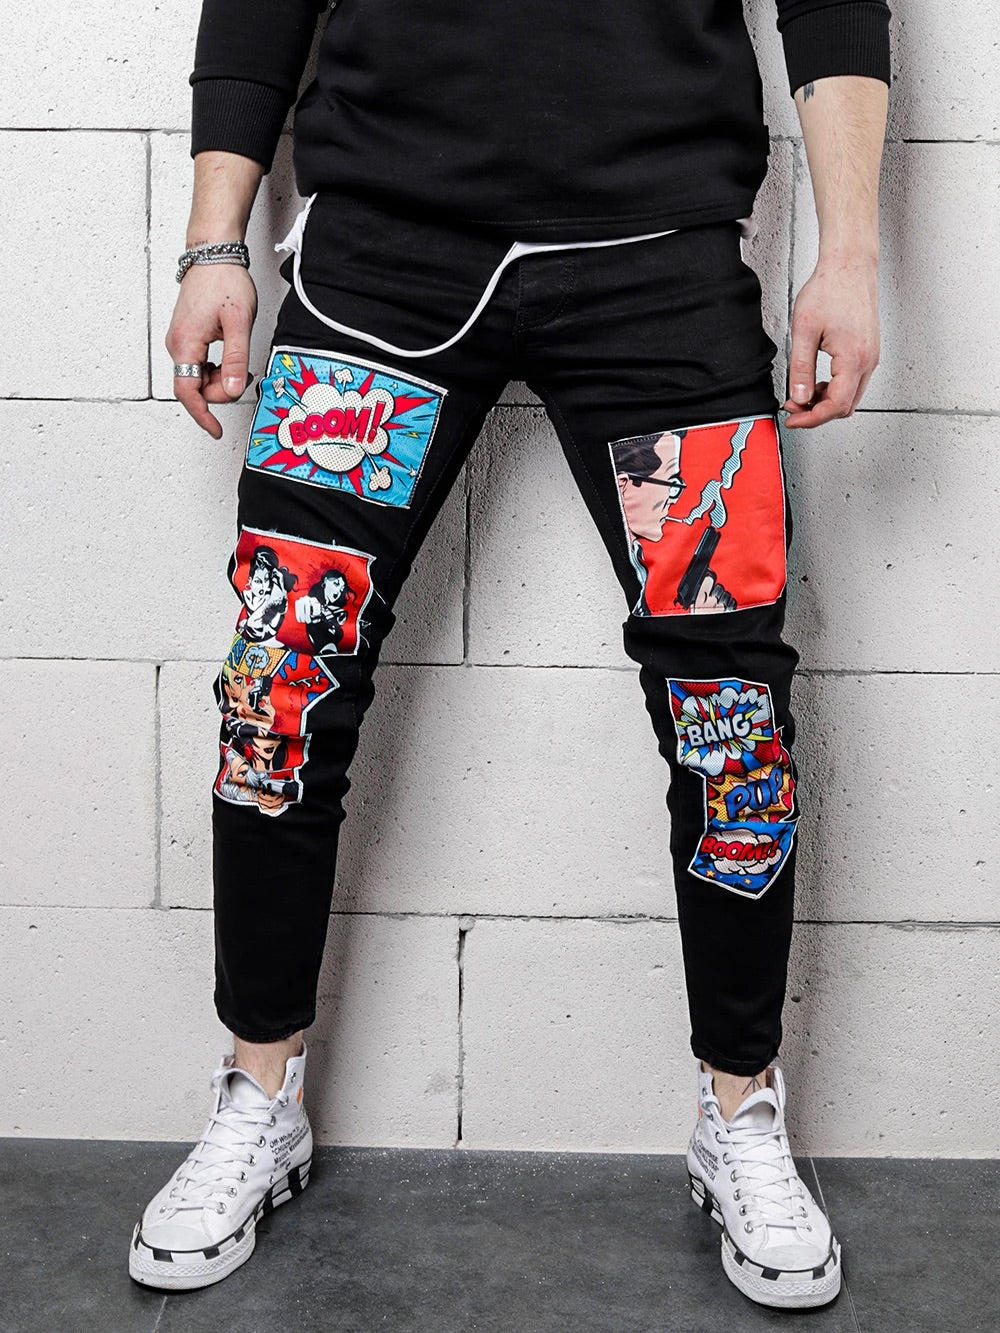 Outoff Comic Art Jeans - outoff